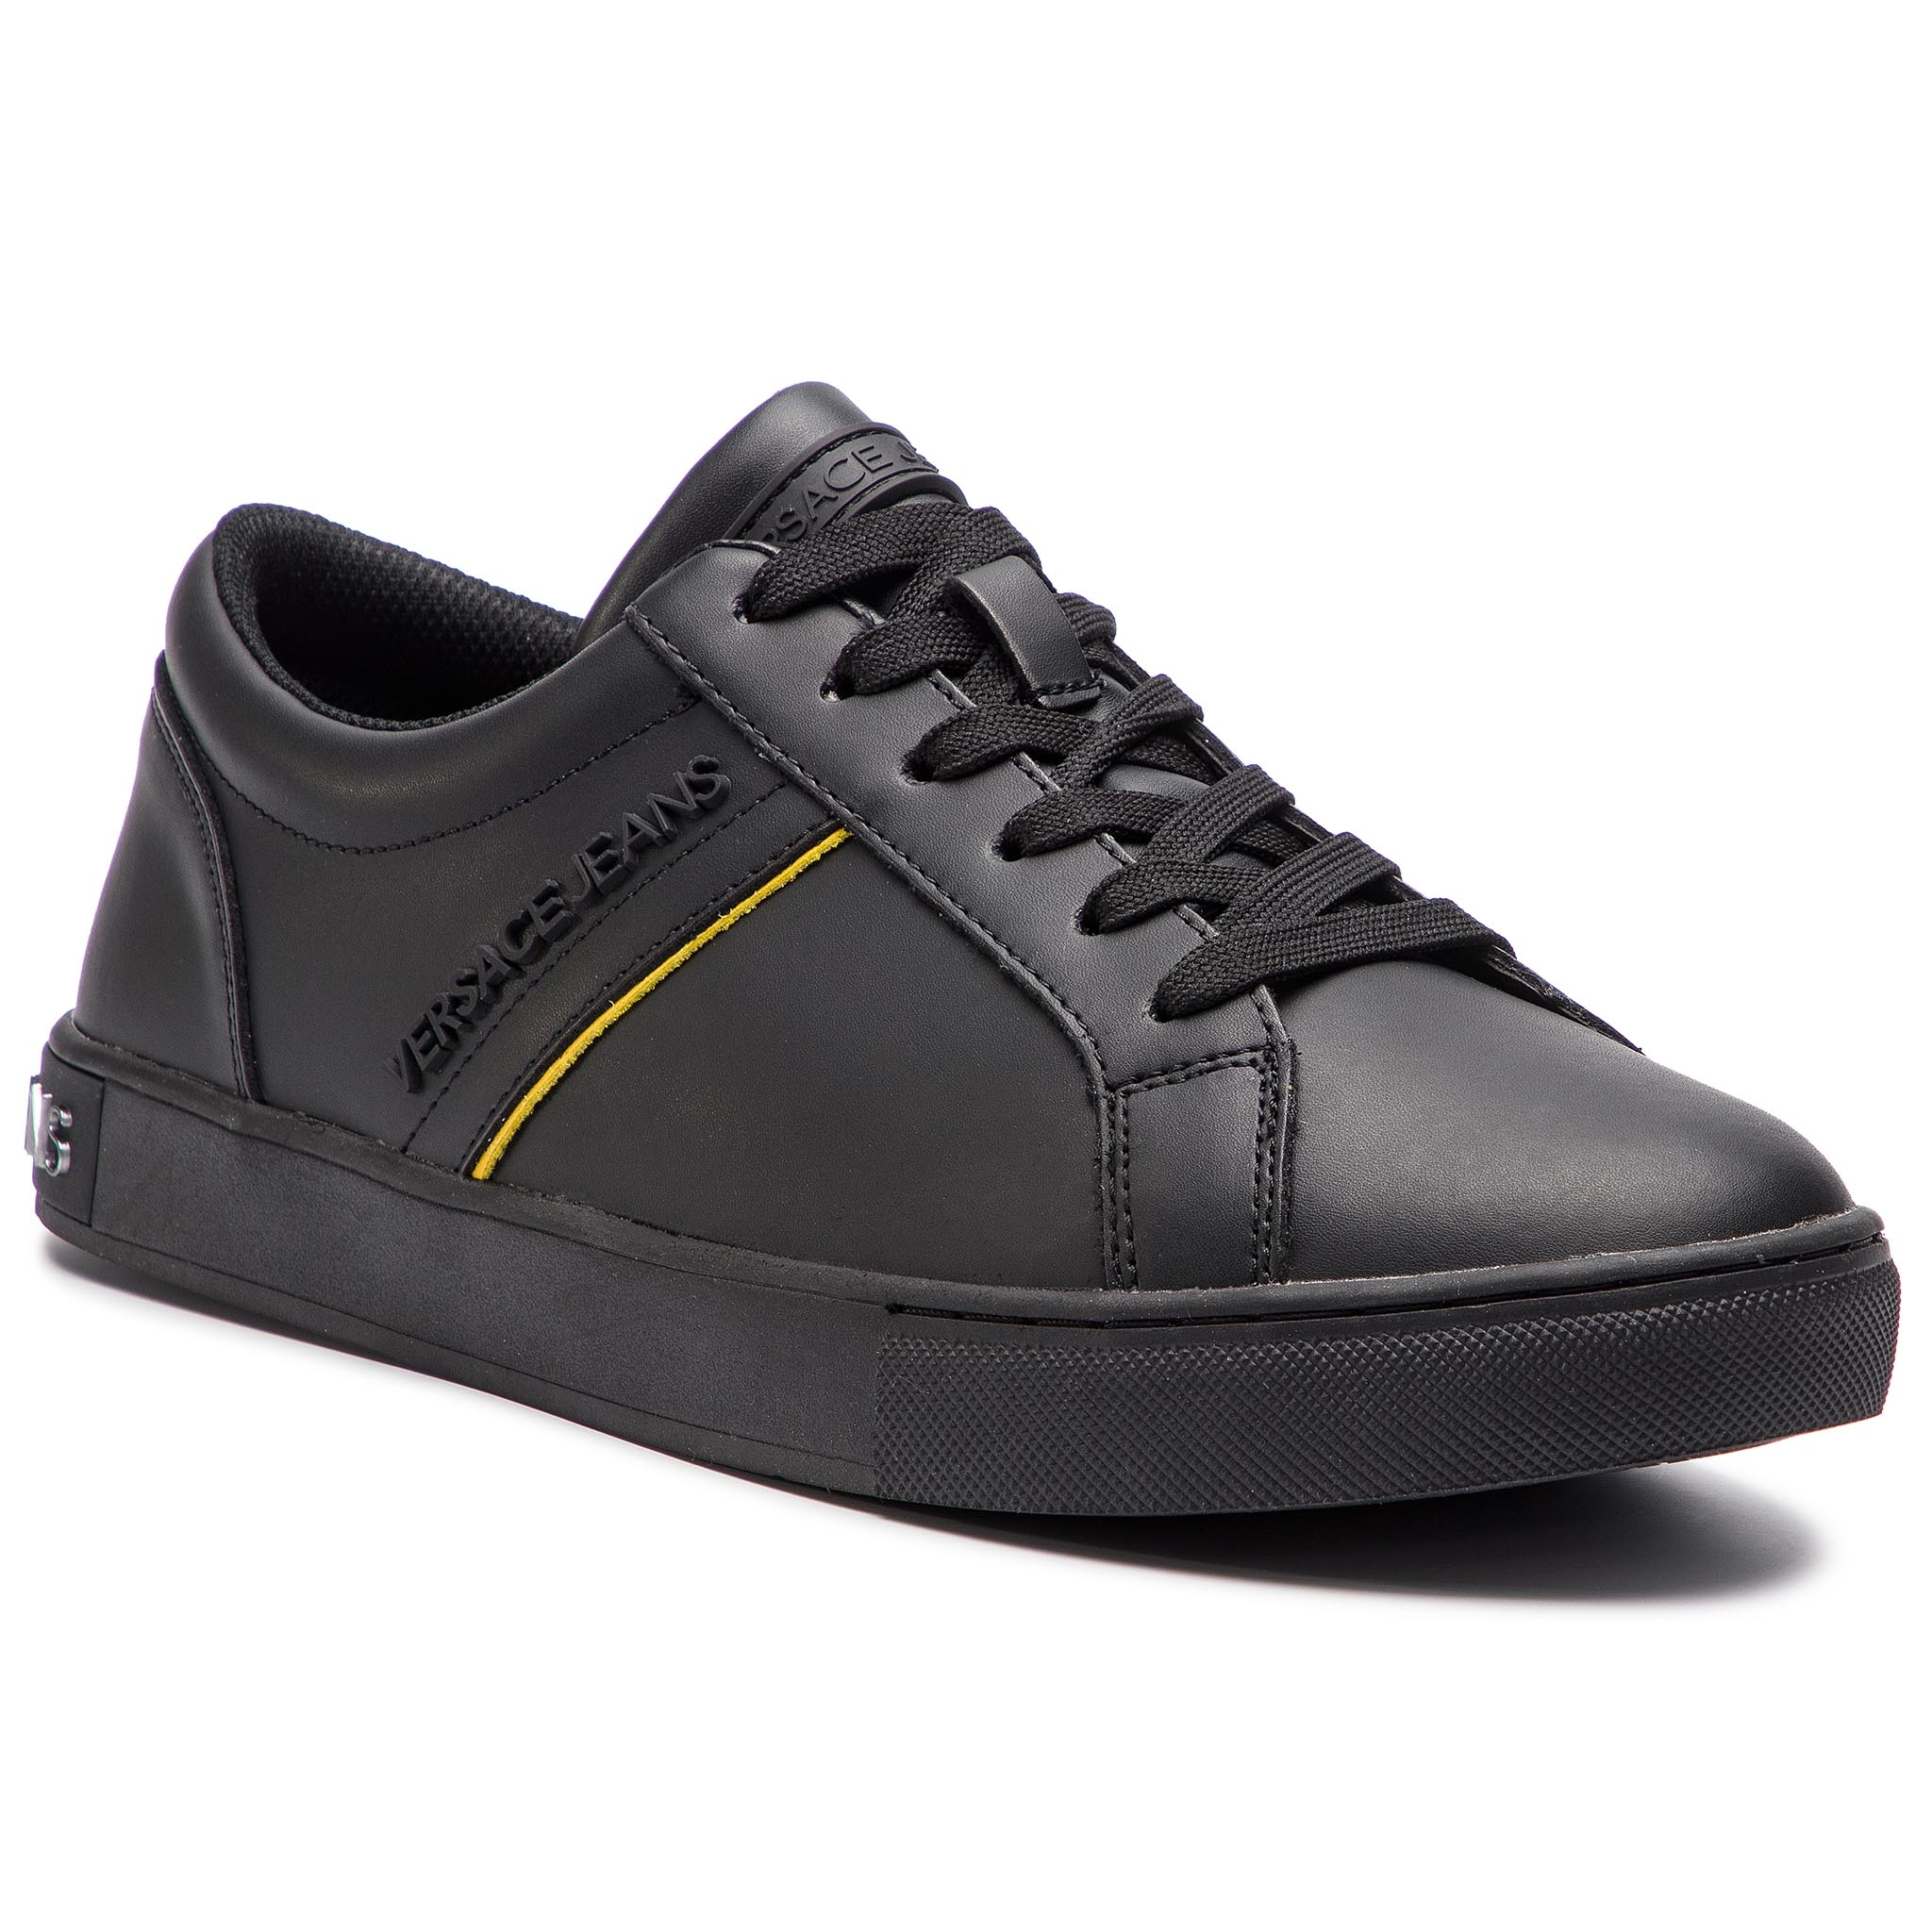 Sneakers VERSACE JEANS - E0YTBSM2 70928 899